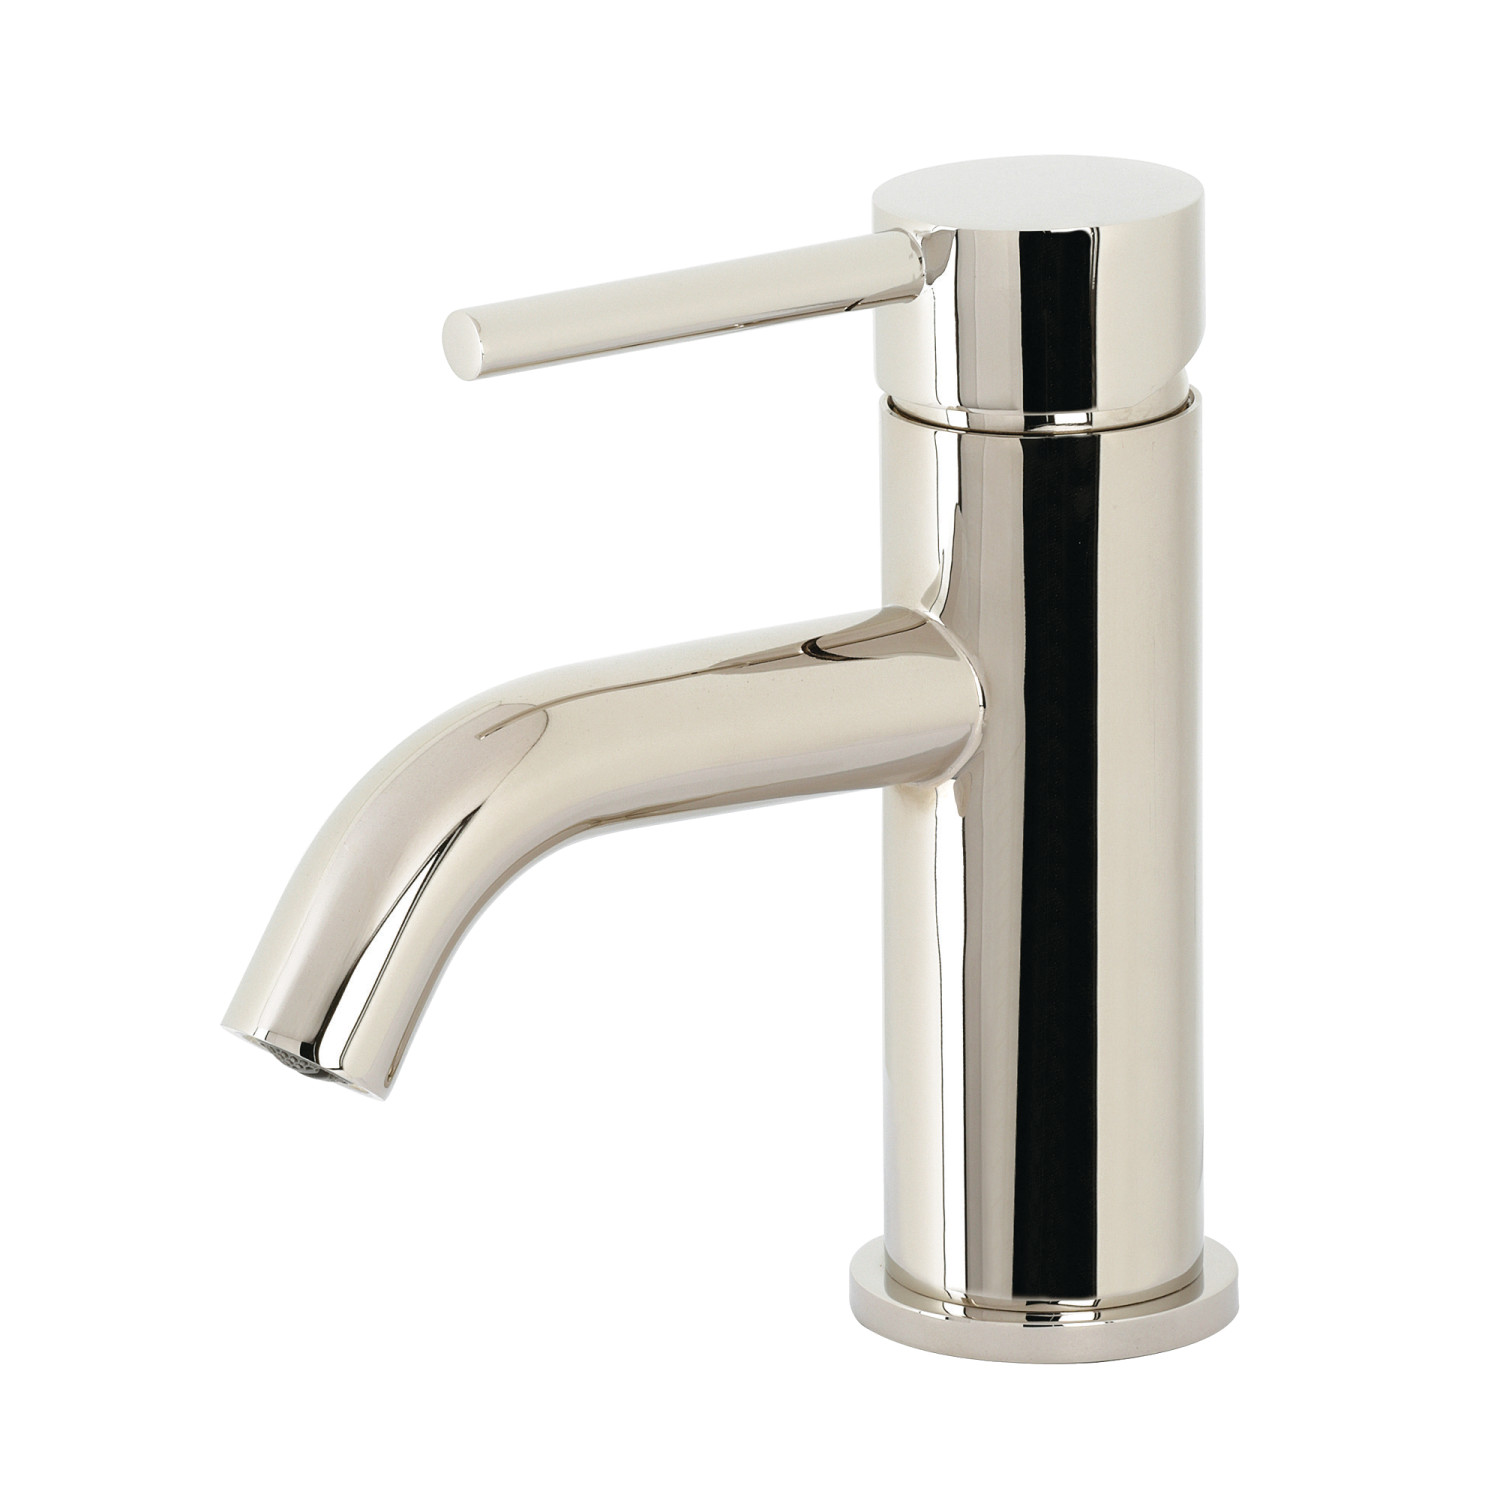 Single-Handle 1-Hole Deck Mounted Bathroom Faucet with Push Pop-Up in Polished Chrome